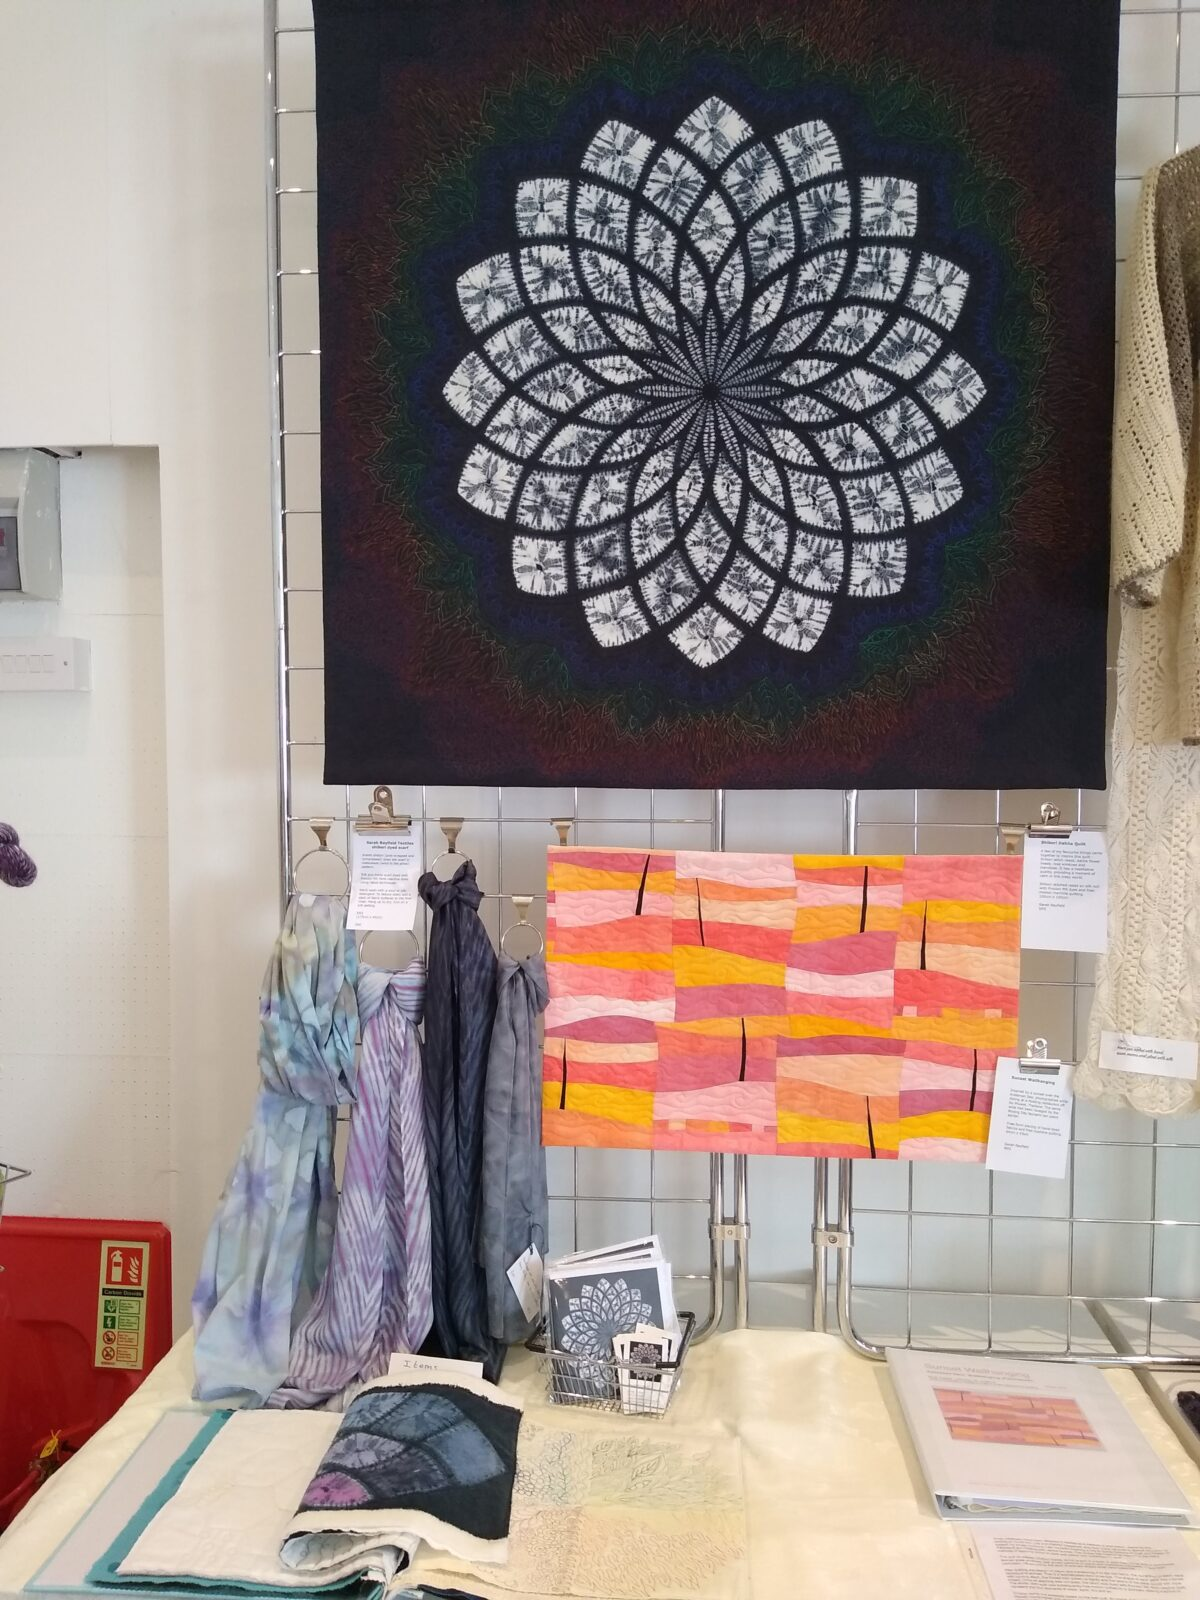 Shibori dyeing and embroidery bySarah Rayfield